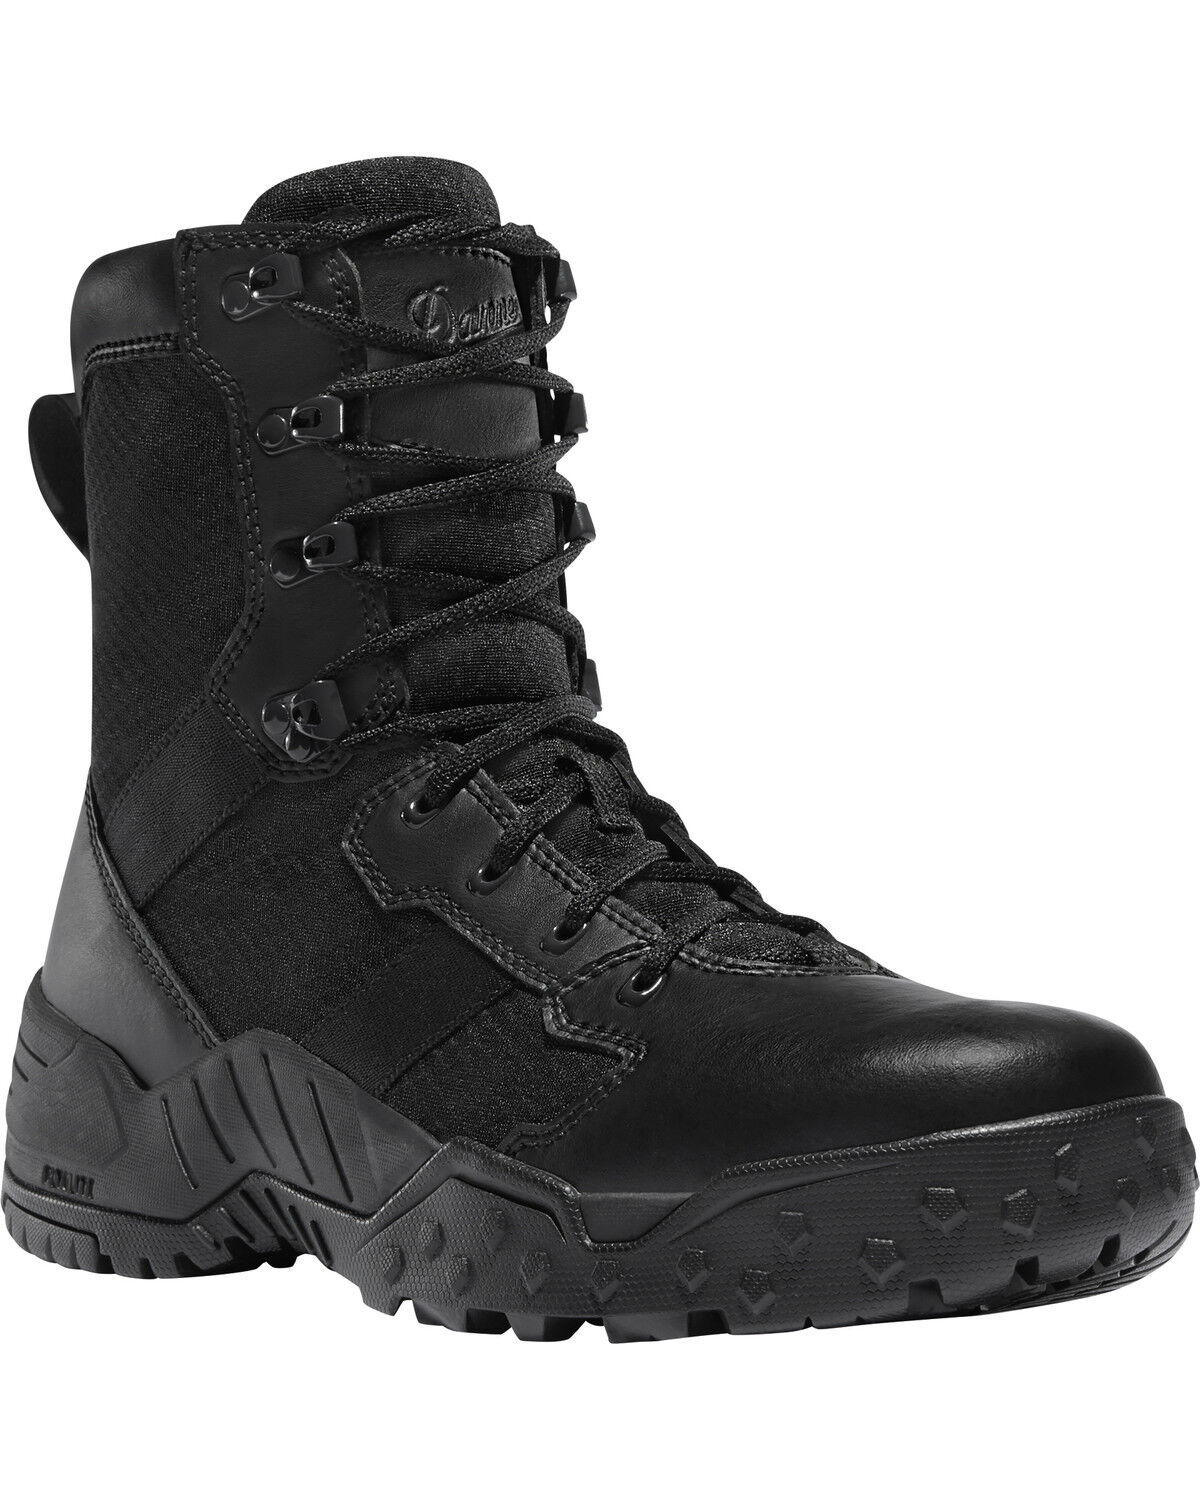 Tactical Boots - Round Toe | Boot Barn